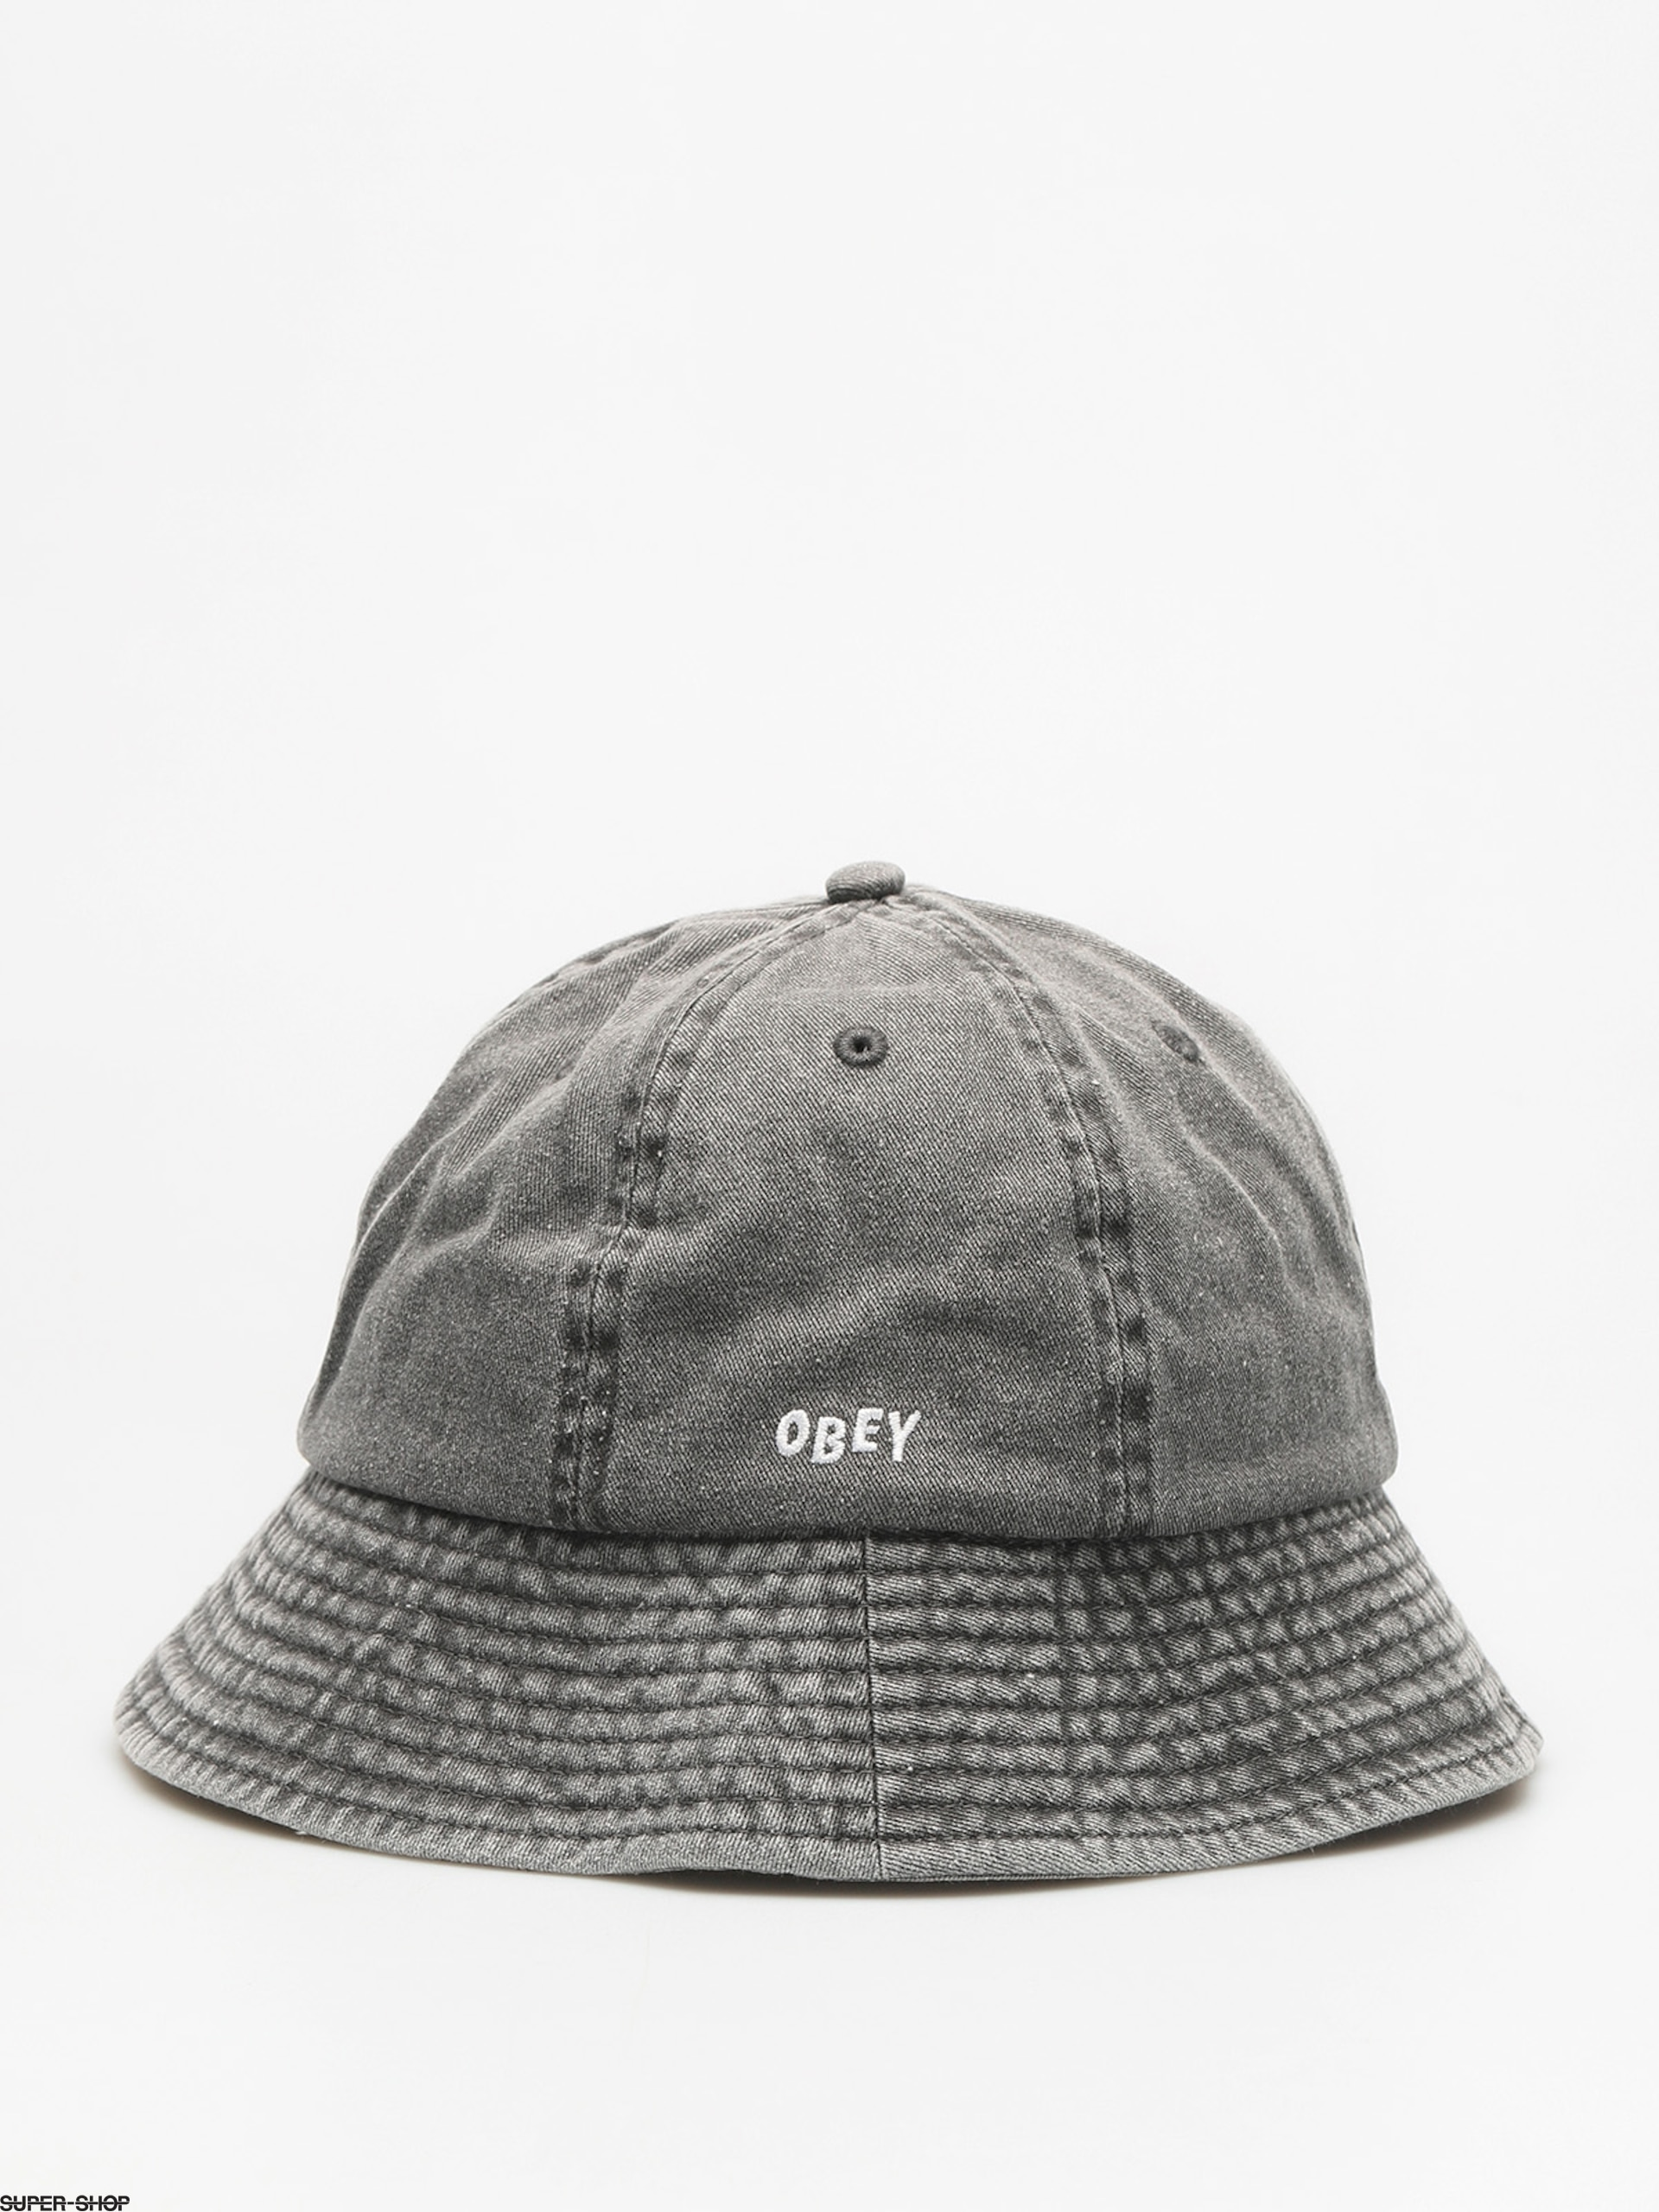 OBEY Hat Decades Bucket ZD (blk)